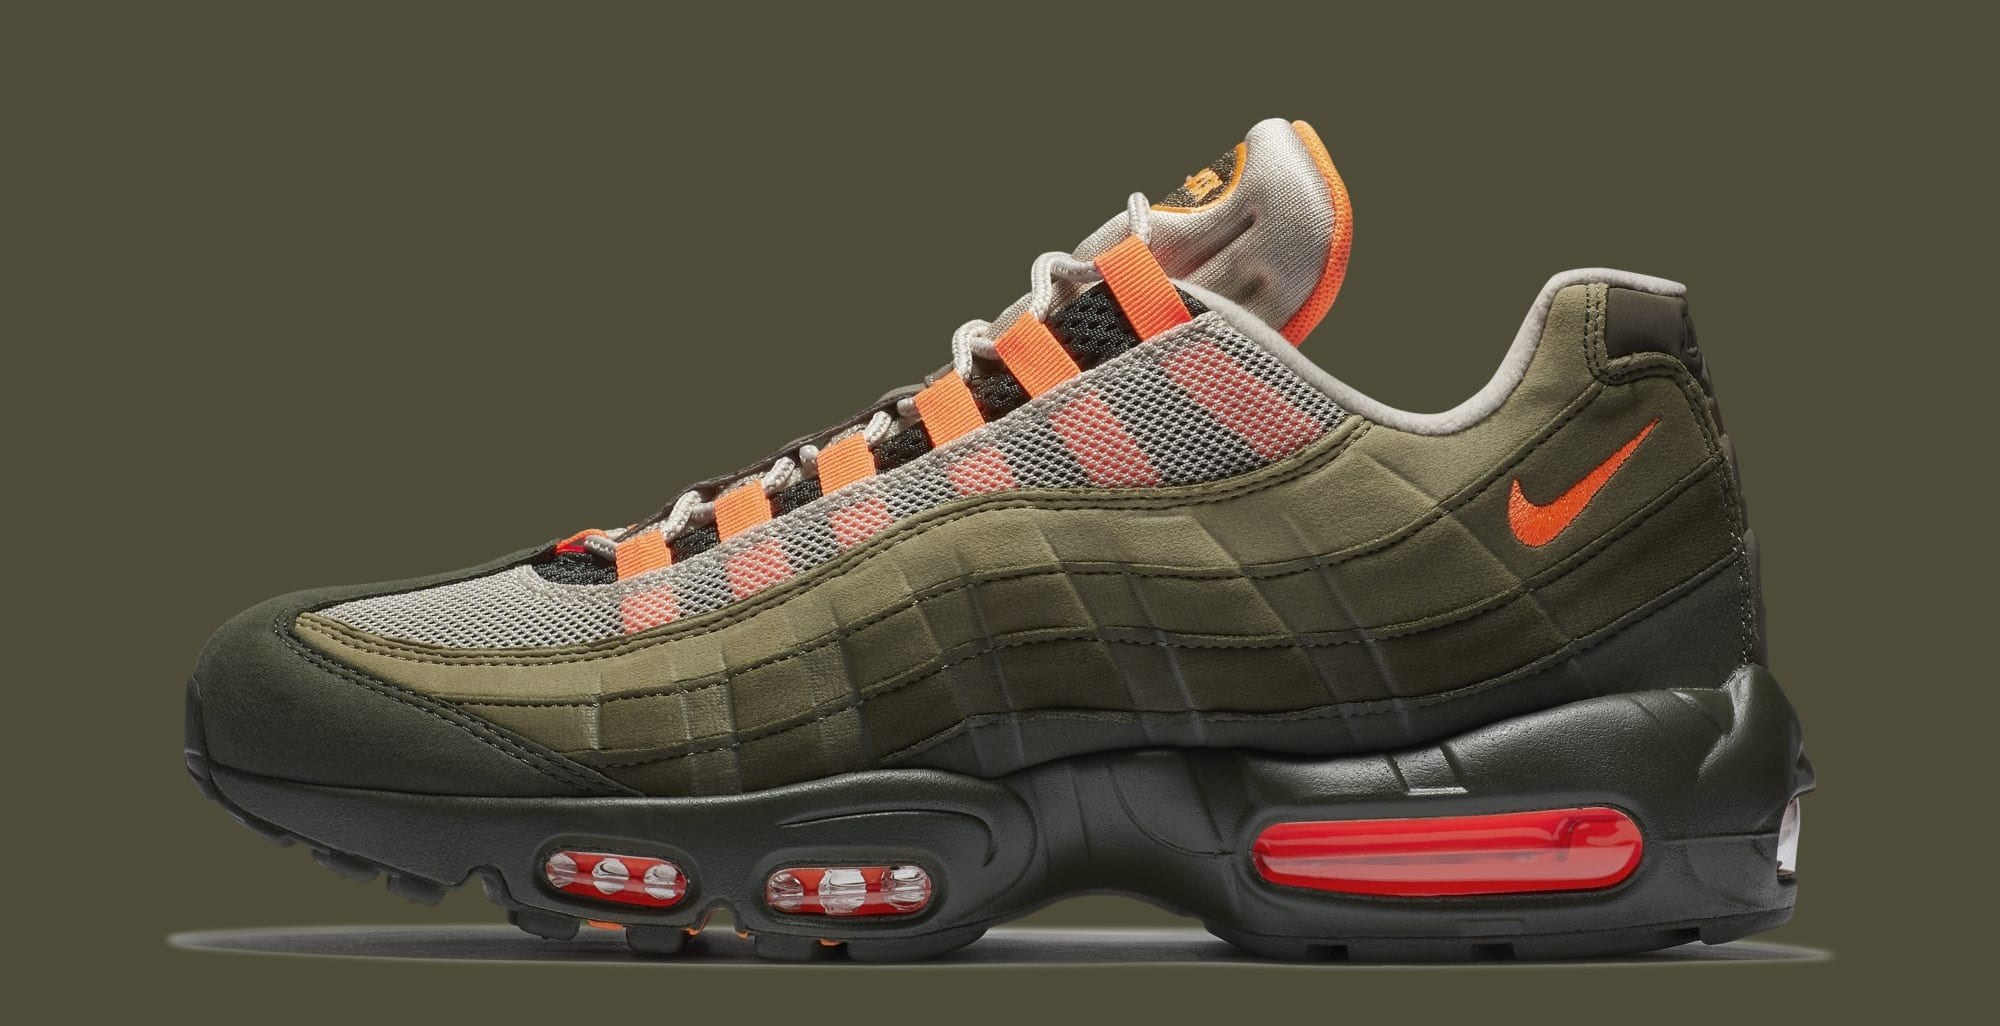 Nike Air Max 95 OG 'String/Total Orange/Neutral Olive' AT2865-200 (Lateral)